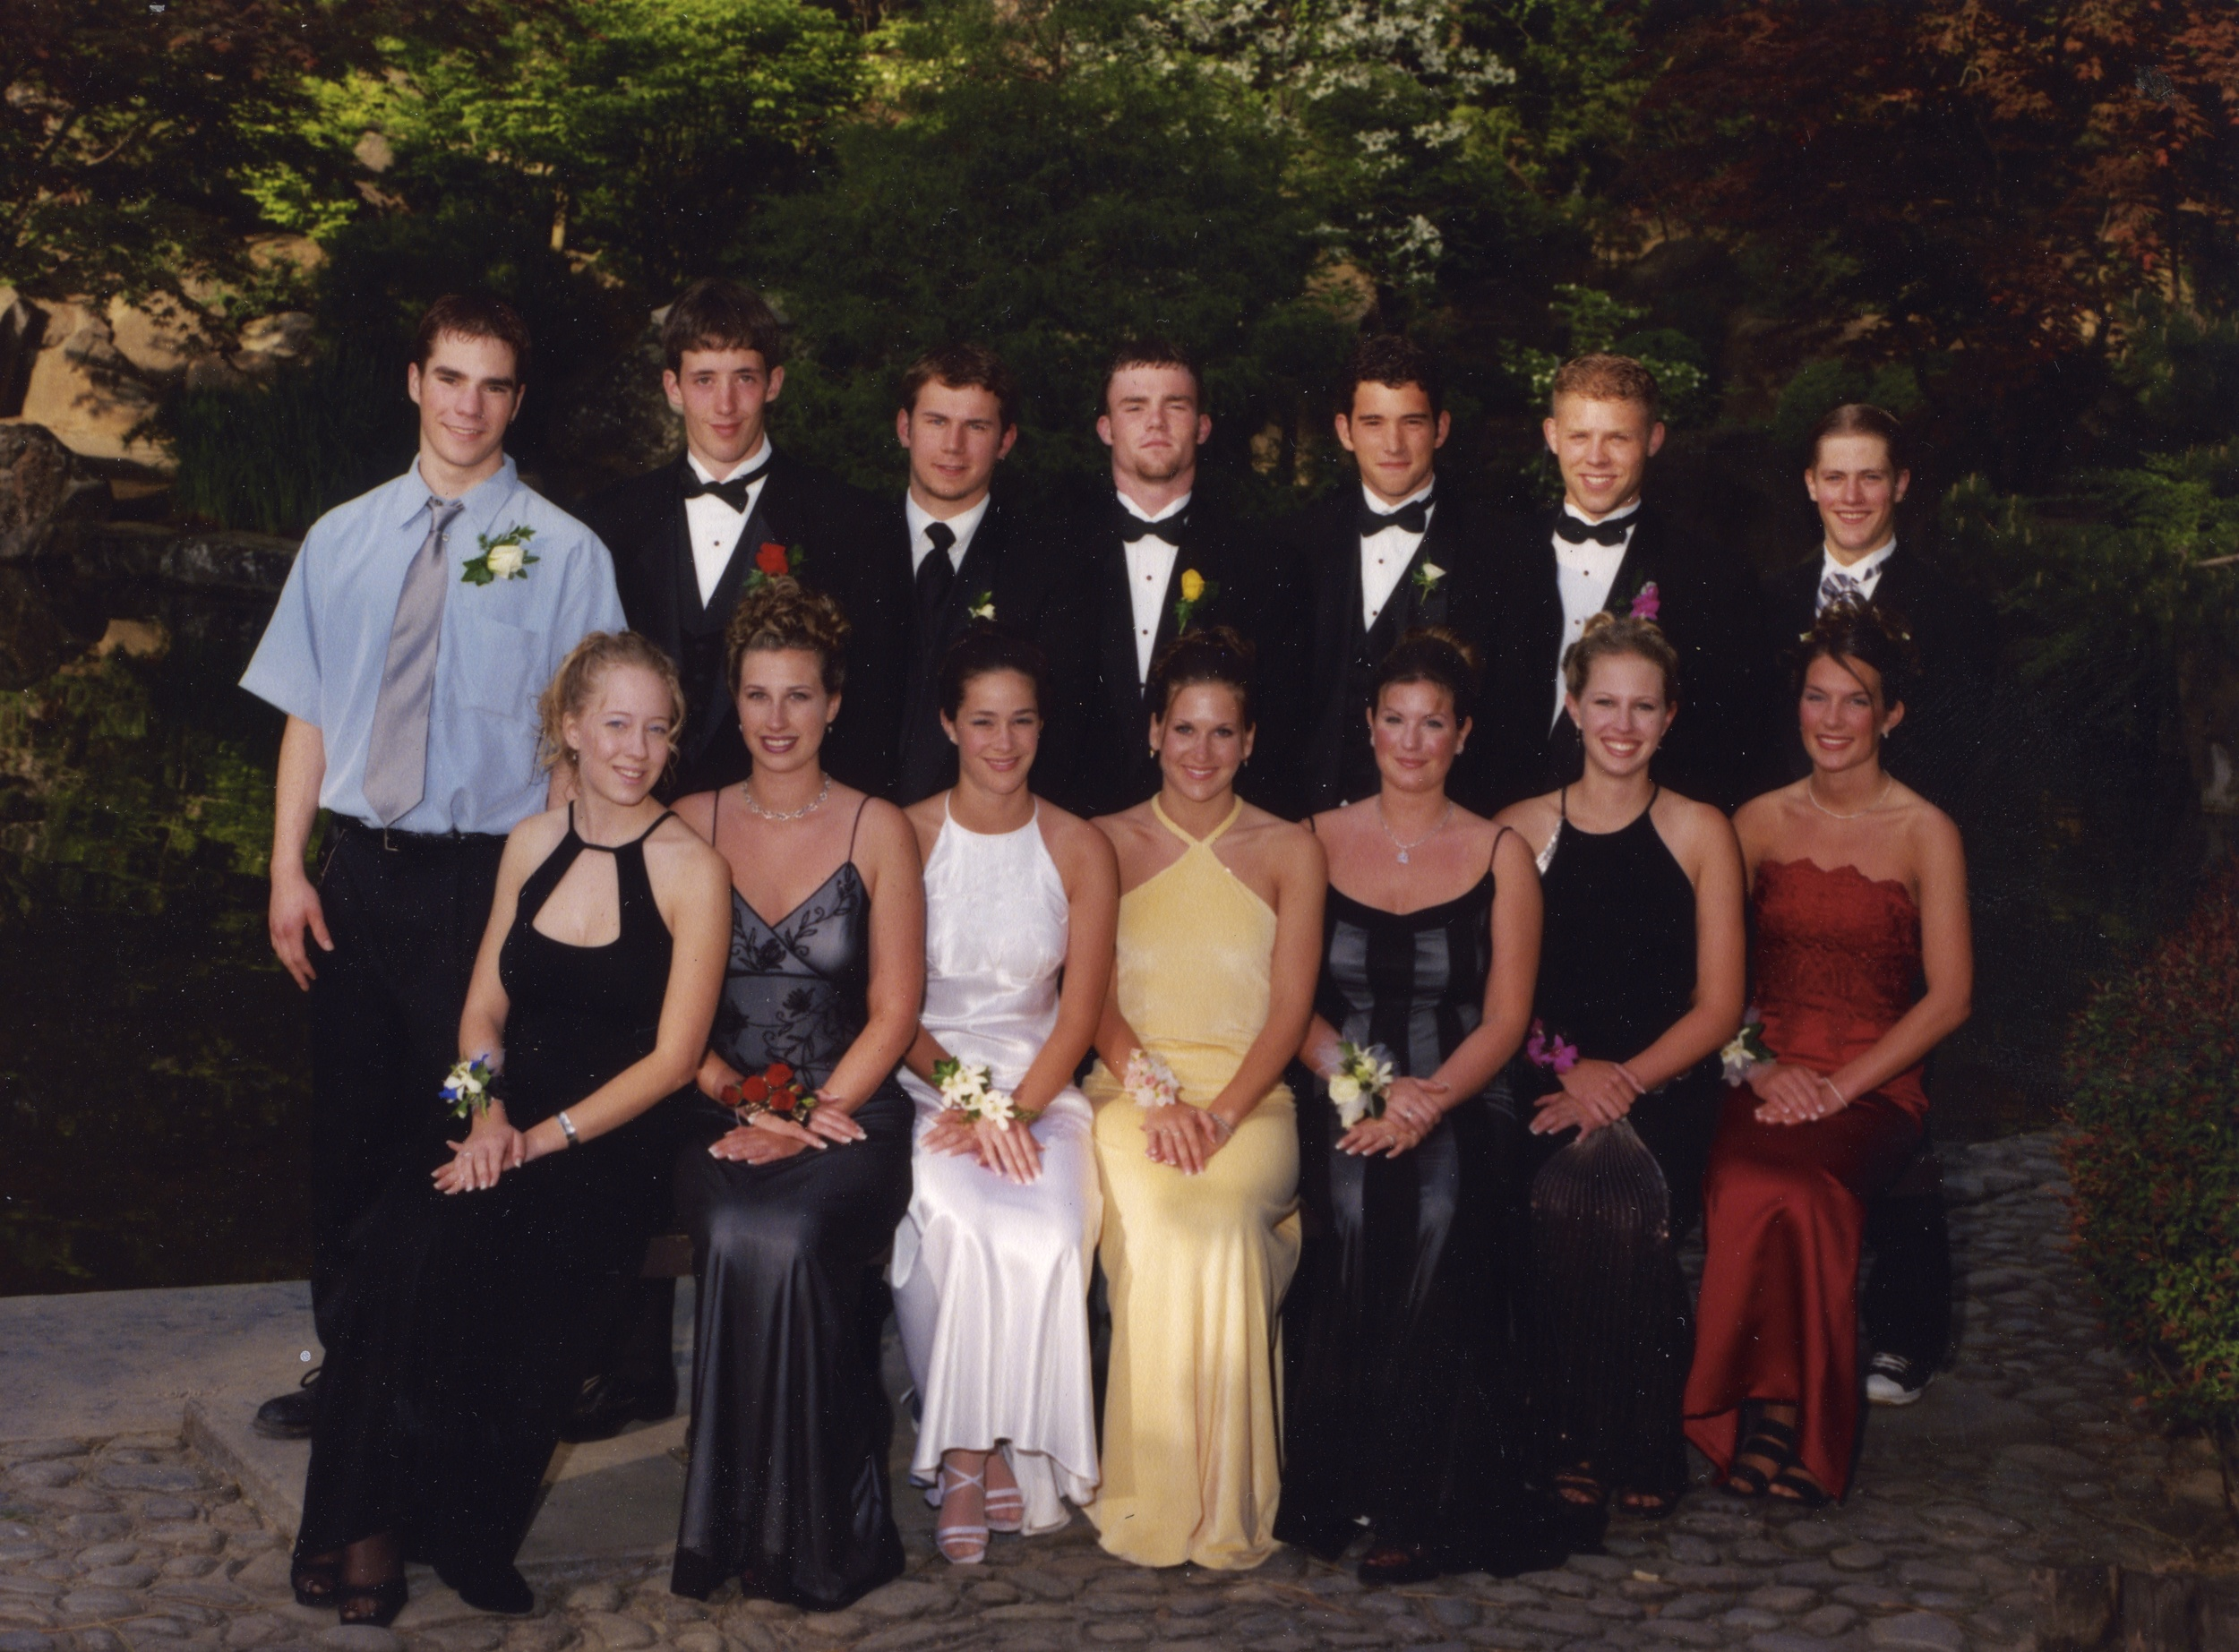 Prom 1998 - Left to Right - Kris Marshall (2/20/79 - 2/23/15) w/ Megan Jankowski, Matt Lumburg w/ Lindsey Tatt, Nick Pontarolo w/ Heather Hawkins, Tim Kestell w/ Erin Quigley, Casey Johnson w/ Katie Hall, Teddy w/ Kelly Cochran, Jeff Parker (8/24/79 - 1/2/15) w/ Chelsey Hendrickson.